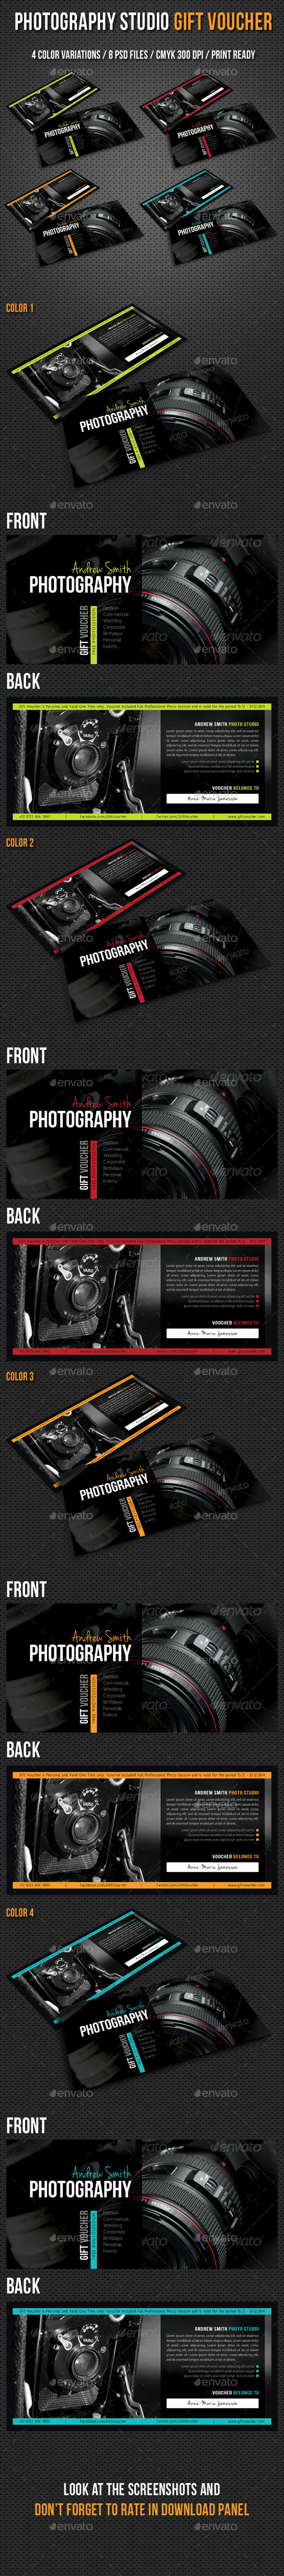 GraphicRiver Photography Studio Gift Voucher 03 9764088